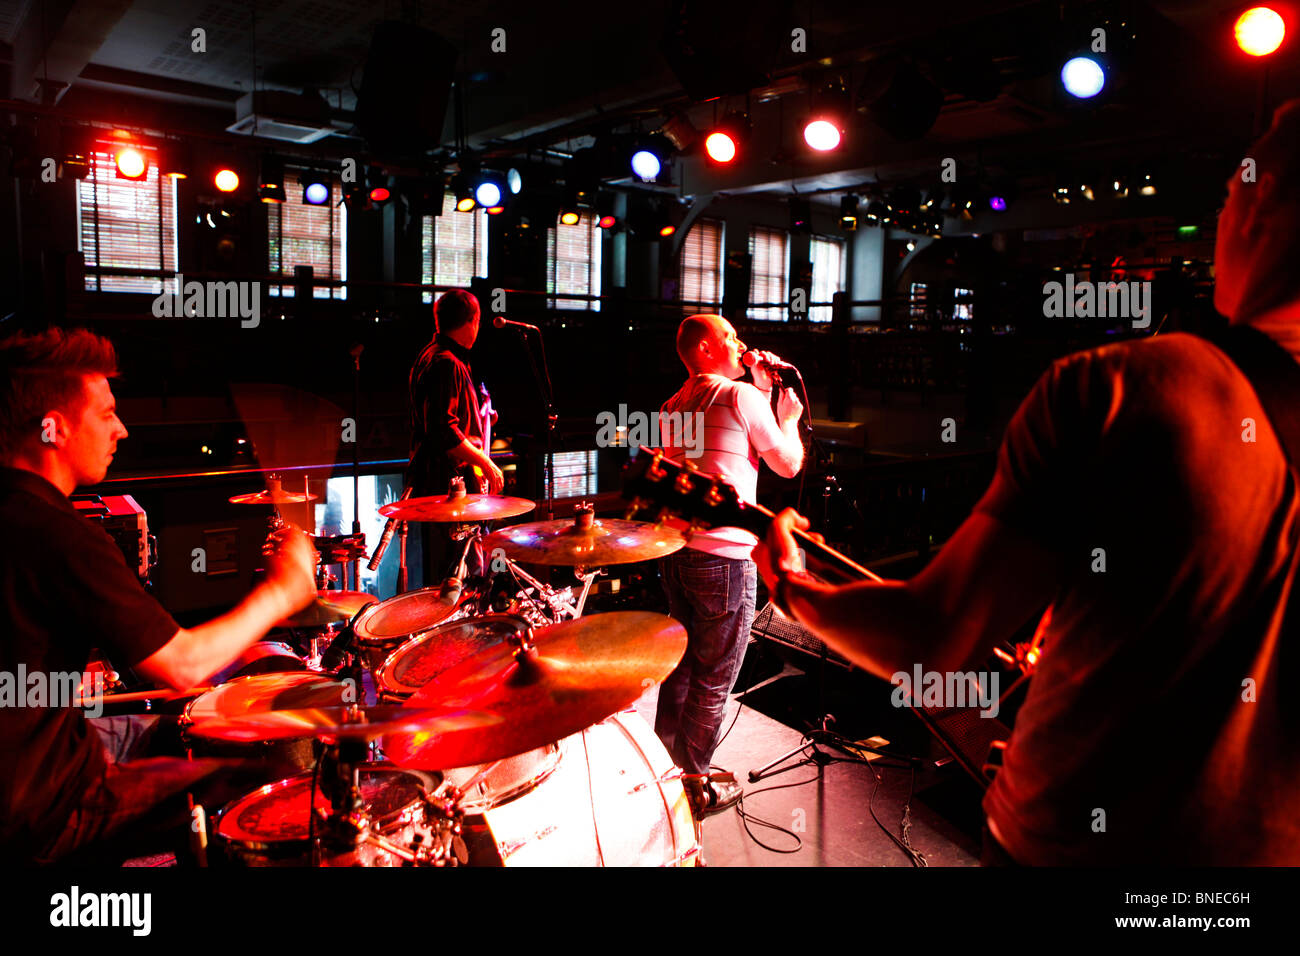 Live music by Mr Ben at The Jam House, The Jewellery Quarter, Birmingham, West Midlands, England, UK - Stock Image